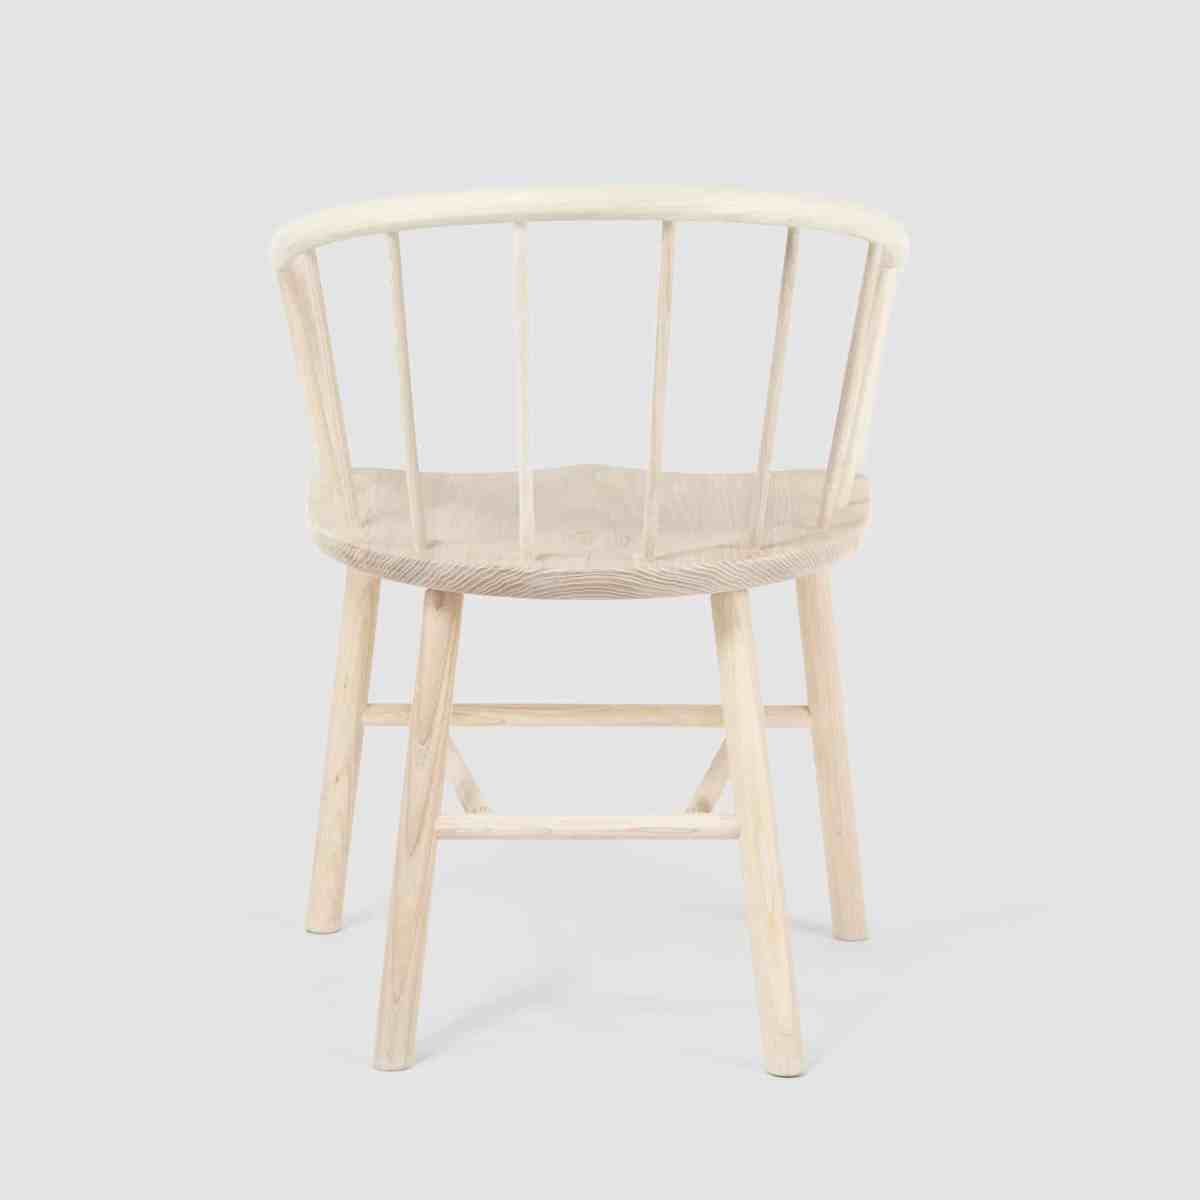 dorset-series-one-hardy-chair-ash-another-country-002